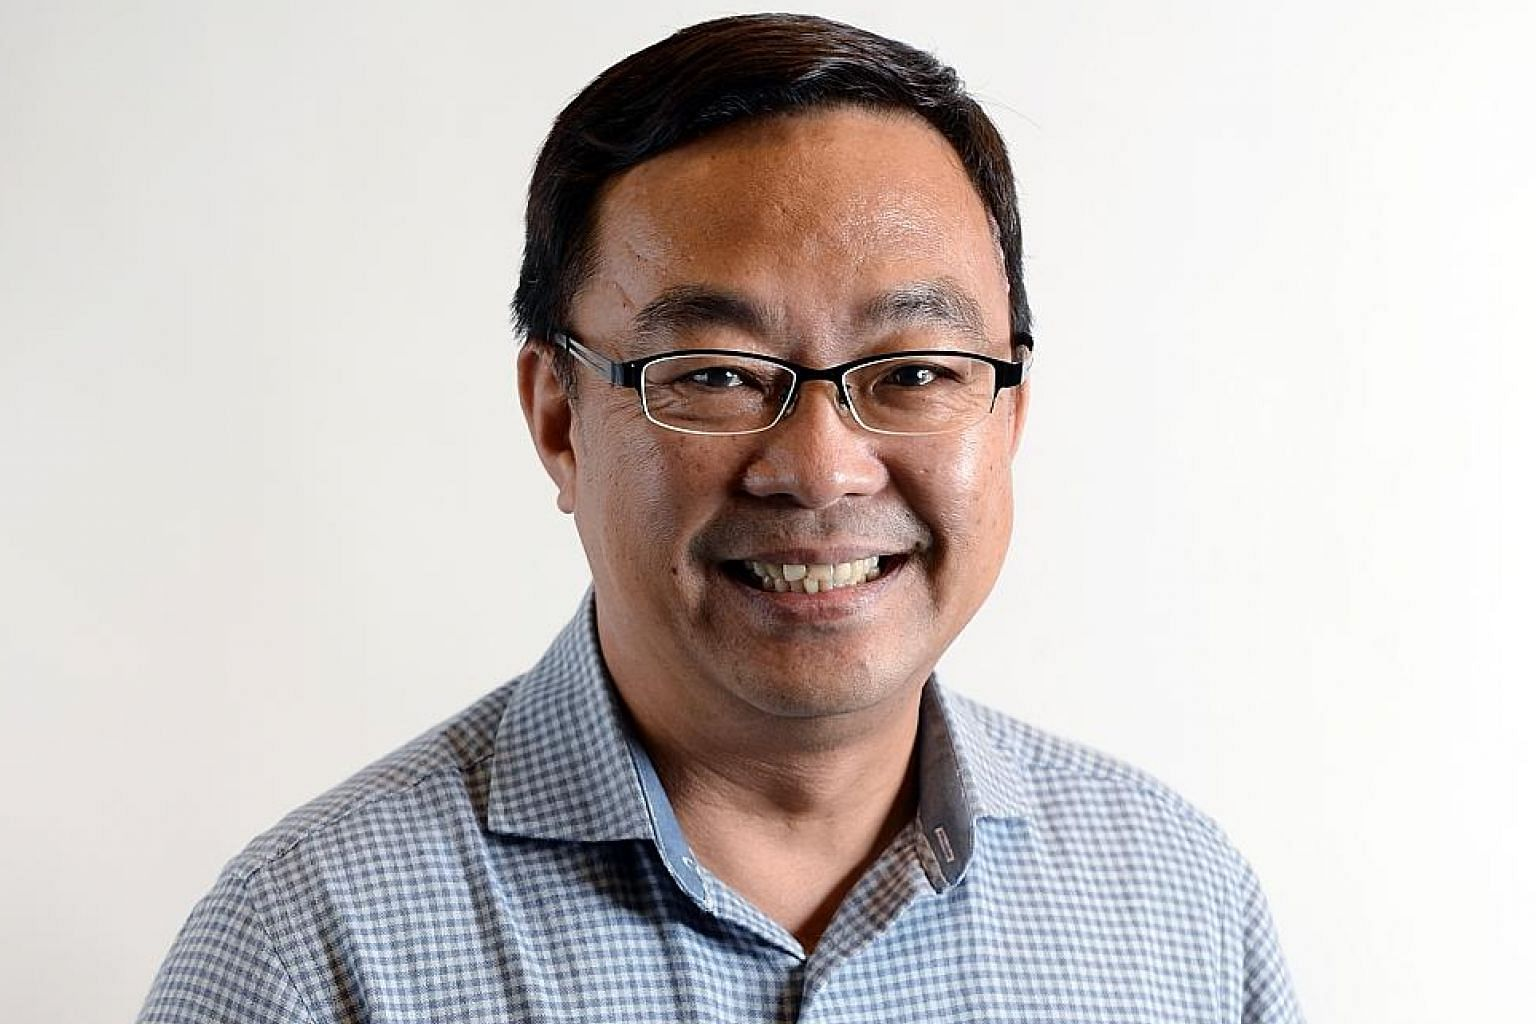 Mr Cedric Foo (above) will head the Communications and Information GPC; Ms Tin Pei Ling, Mr Murali Pillai and Ms Rahayu Mahzam are No. 2s in various GPCs.